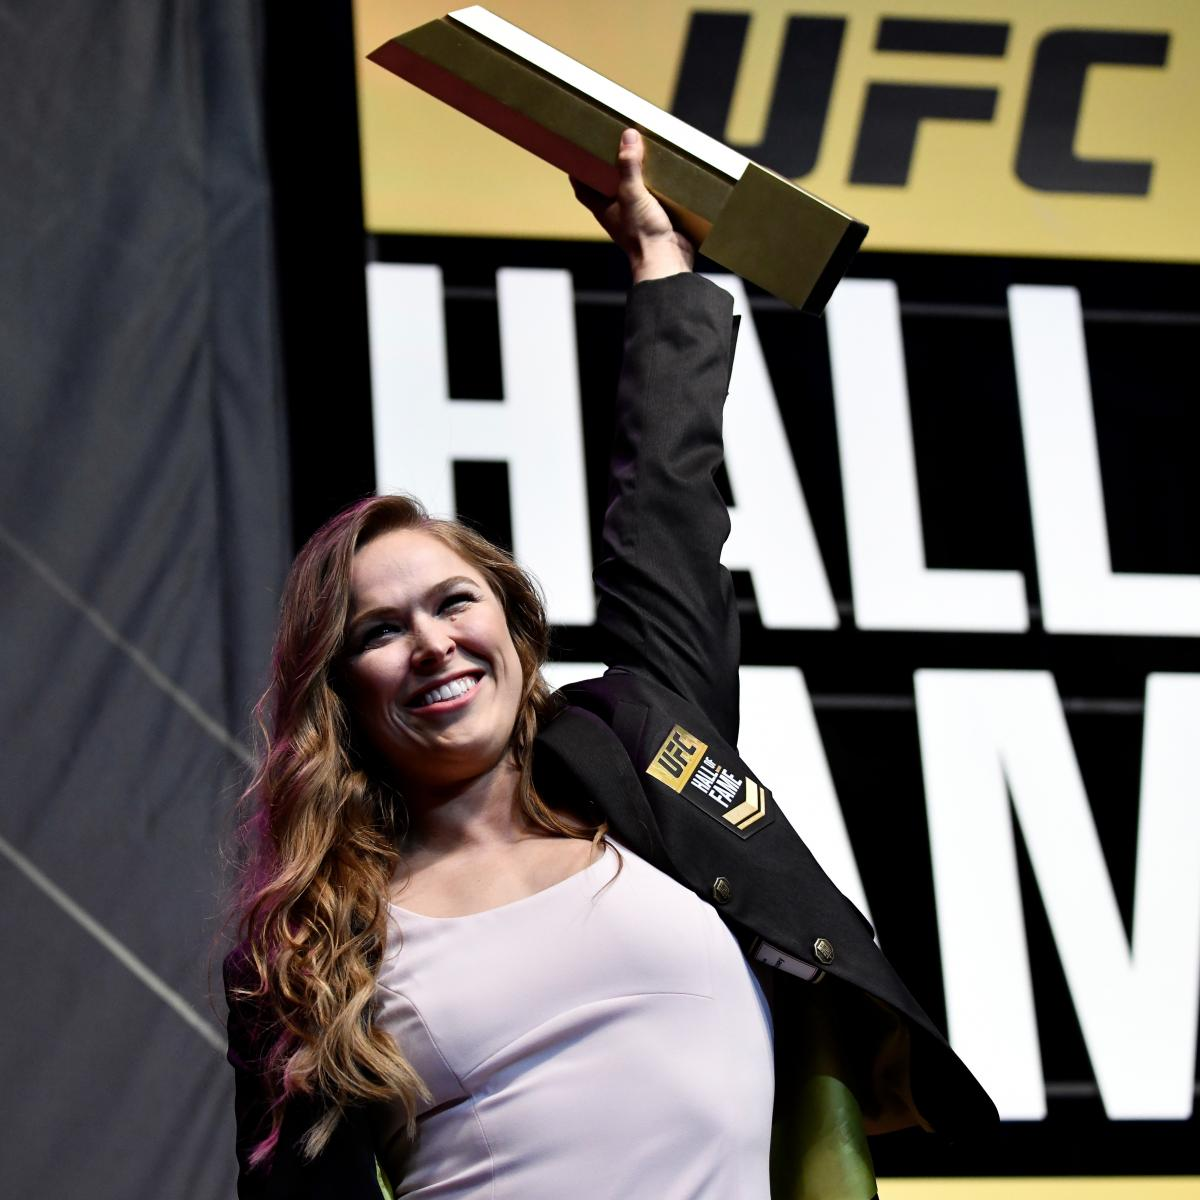 how to get hall of fame ufc 2